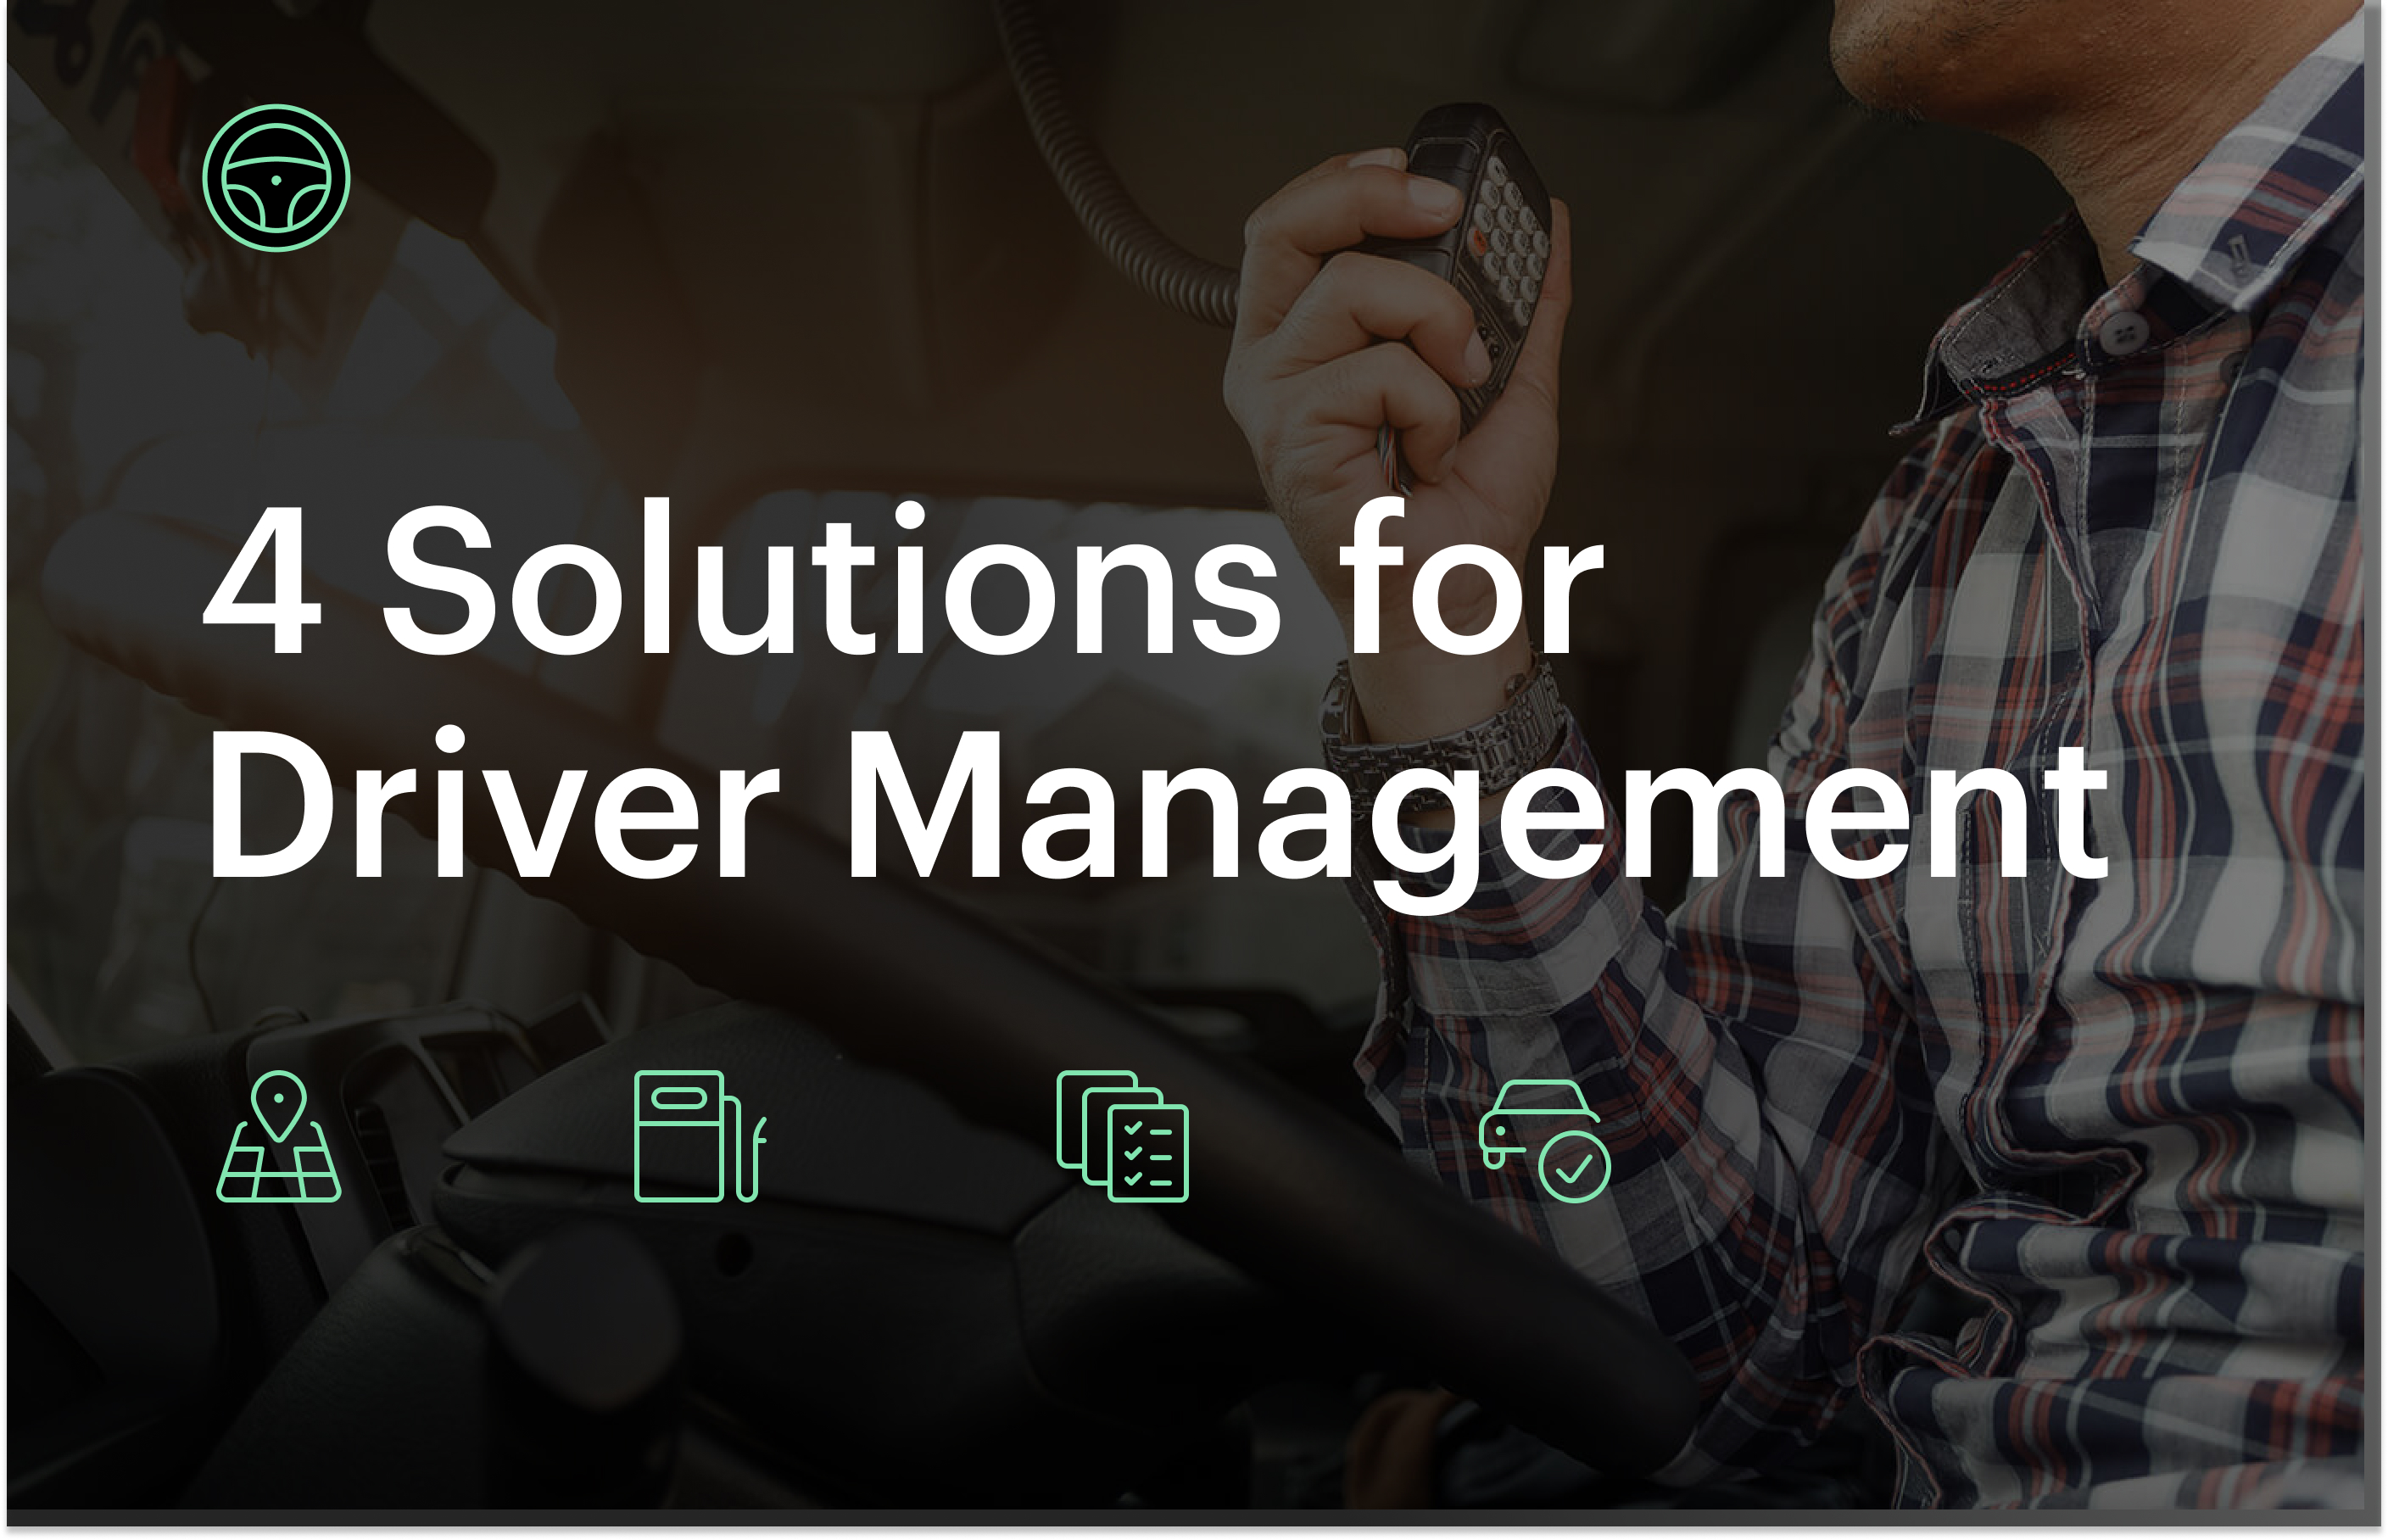 Driver management visual